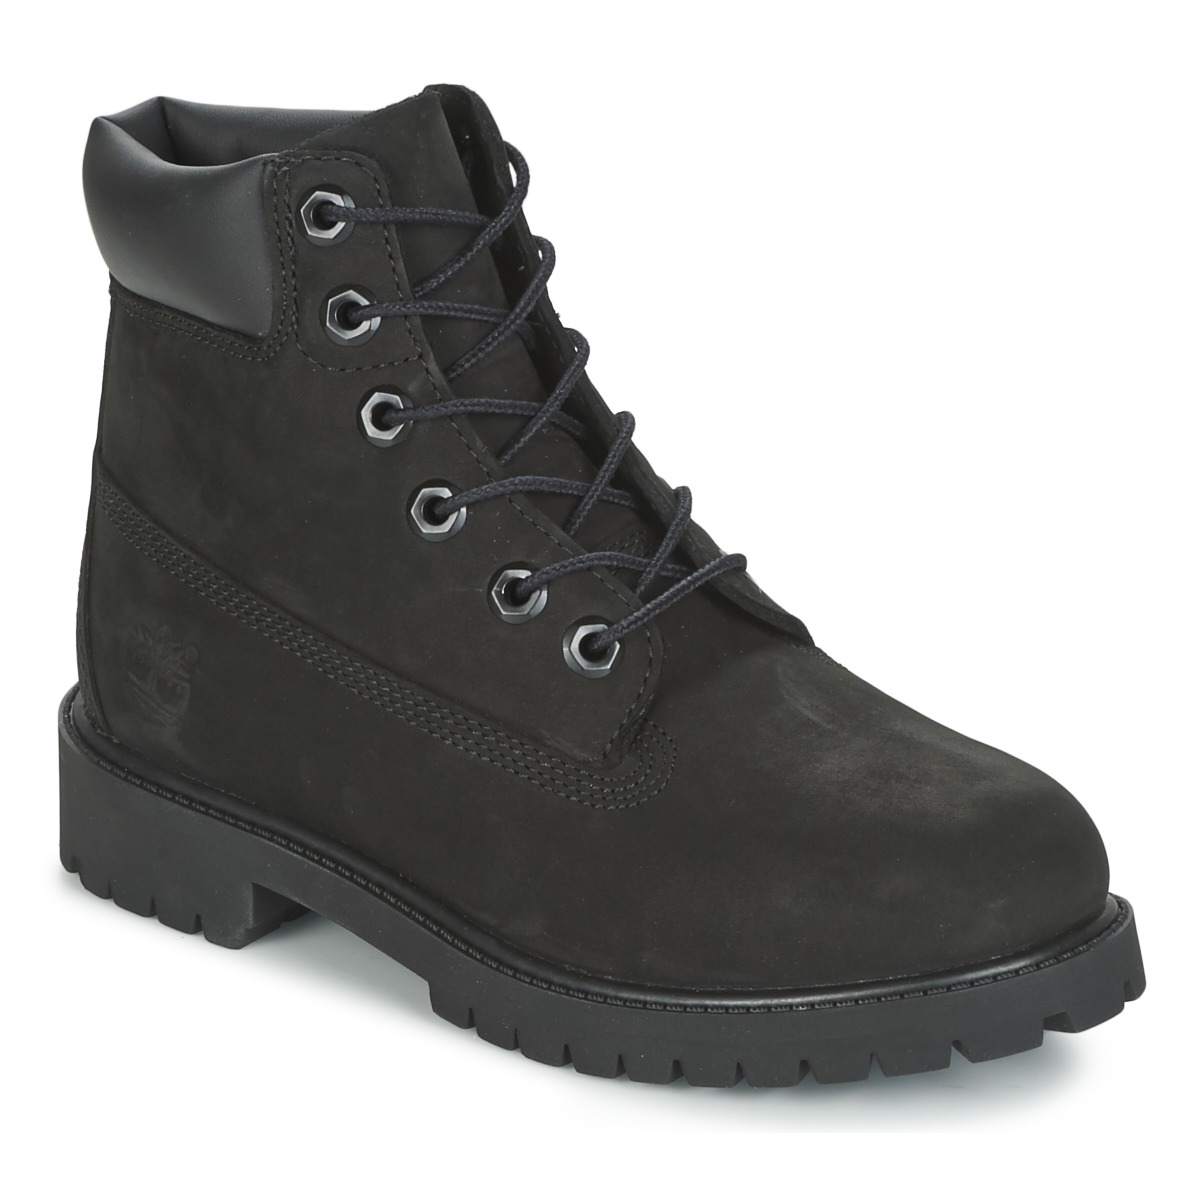 Timberland 6 IN PREMIUM WP BOOT Noir